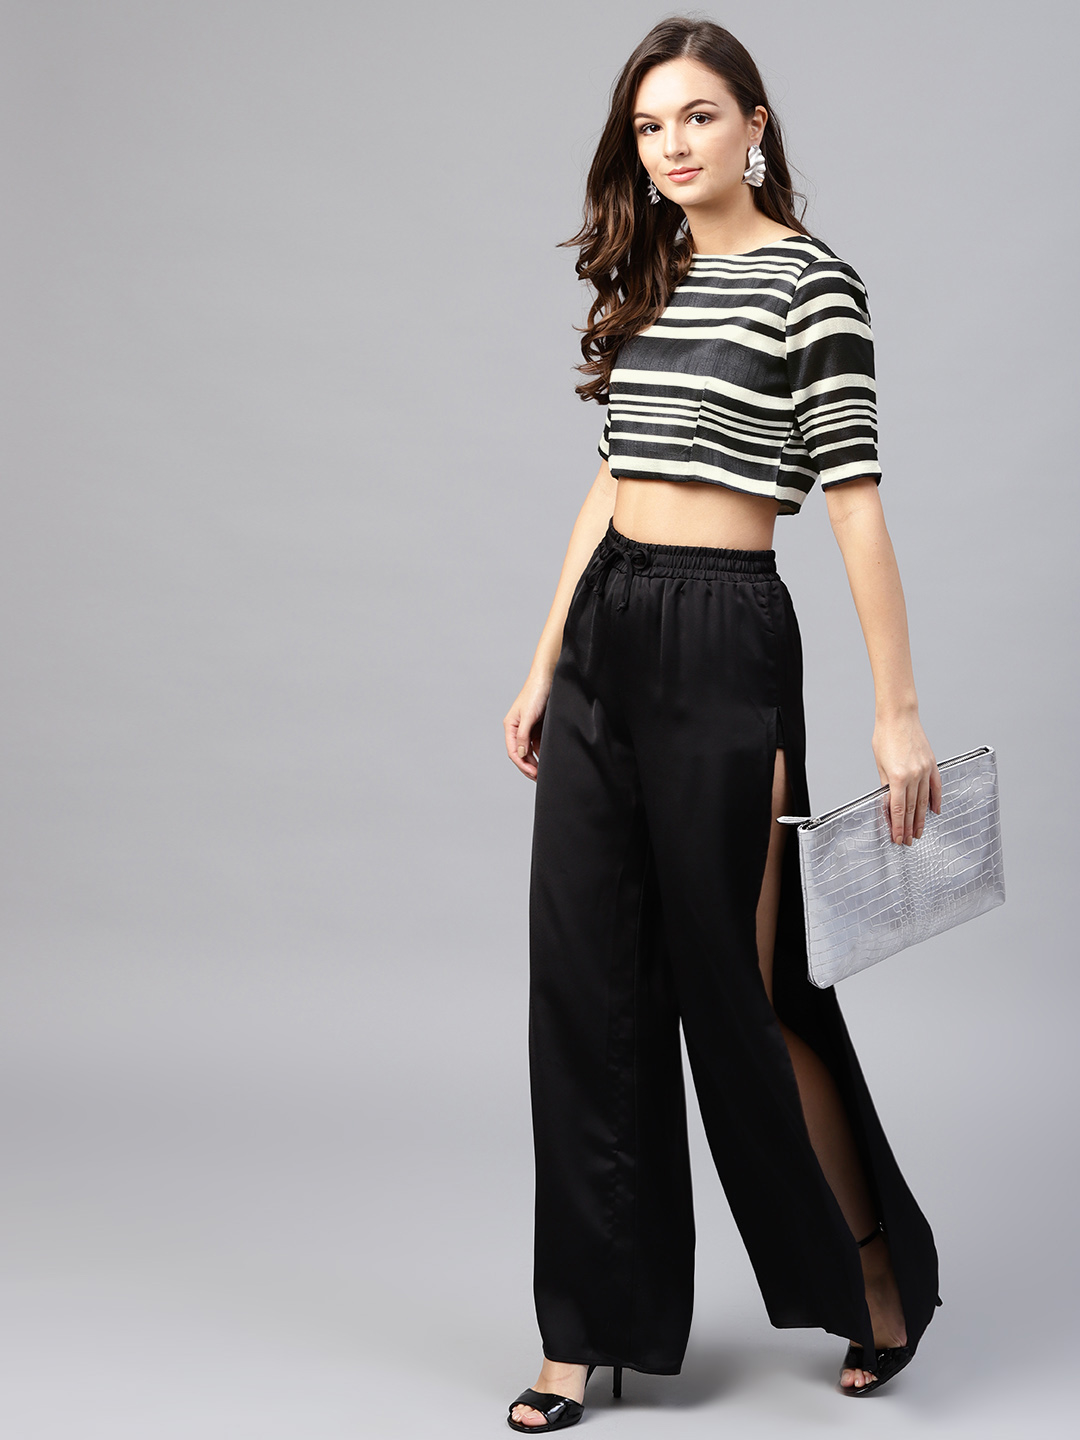 13-types-of-tops-Women-Black-Striped-Top